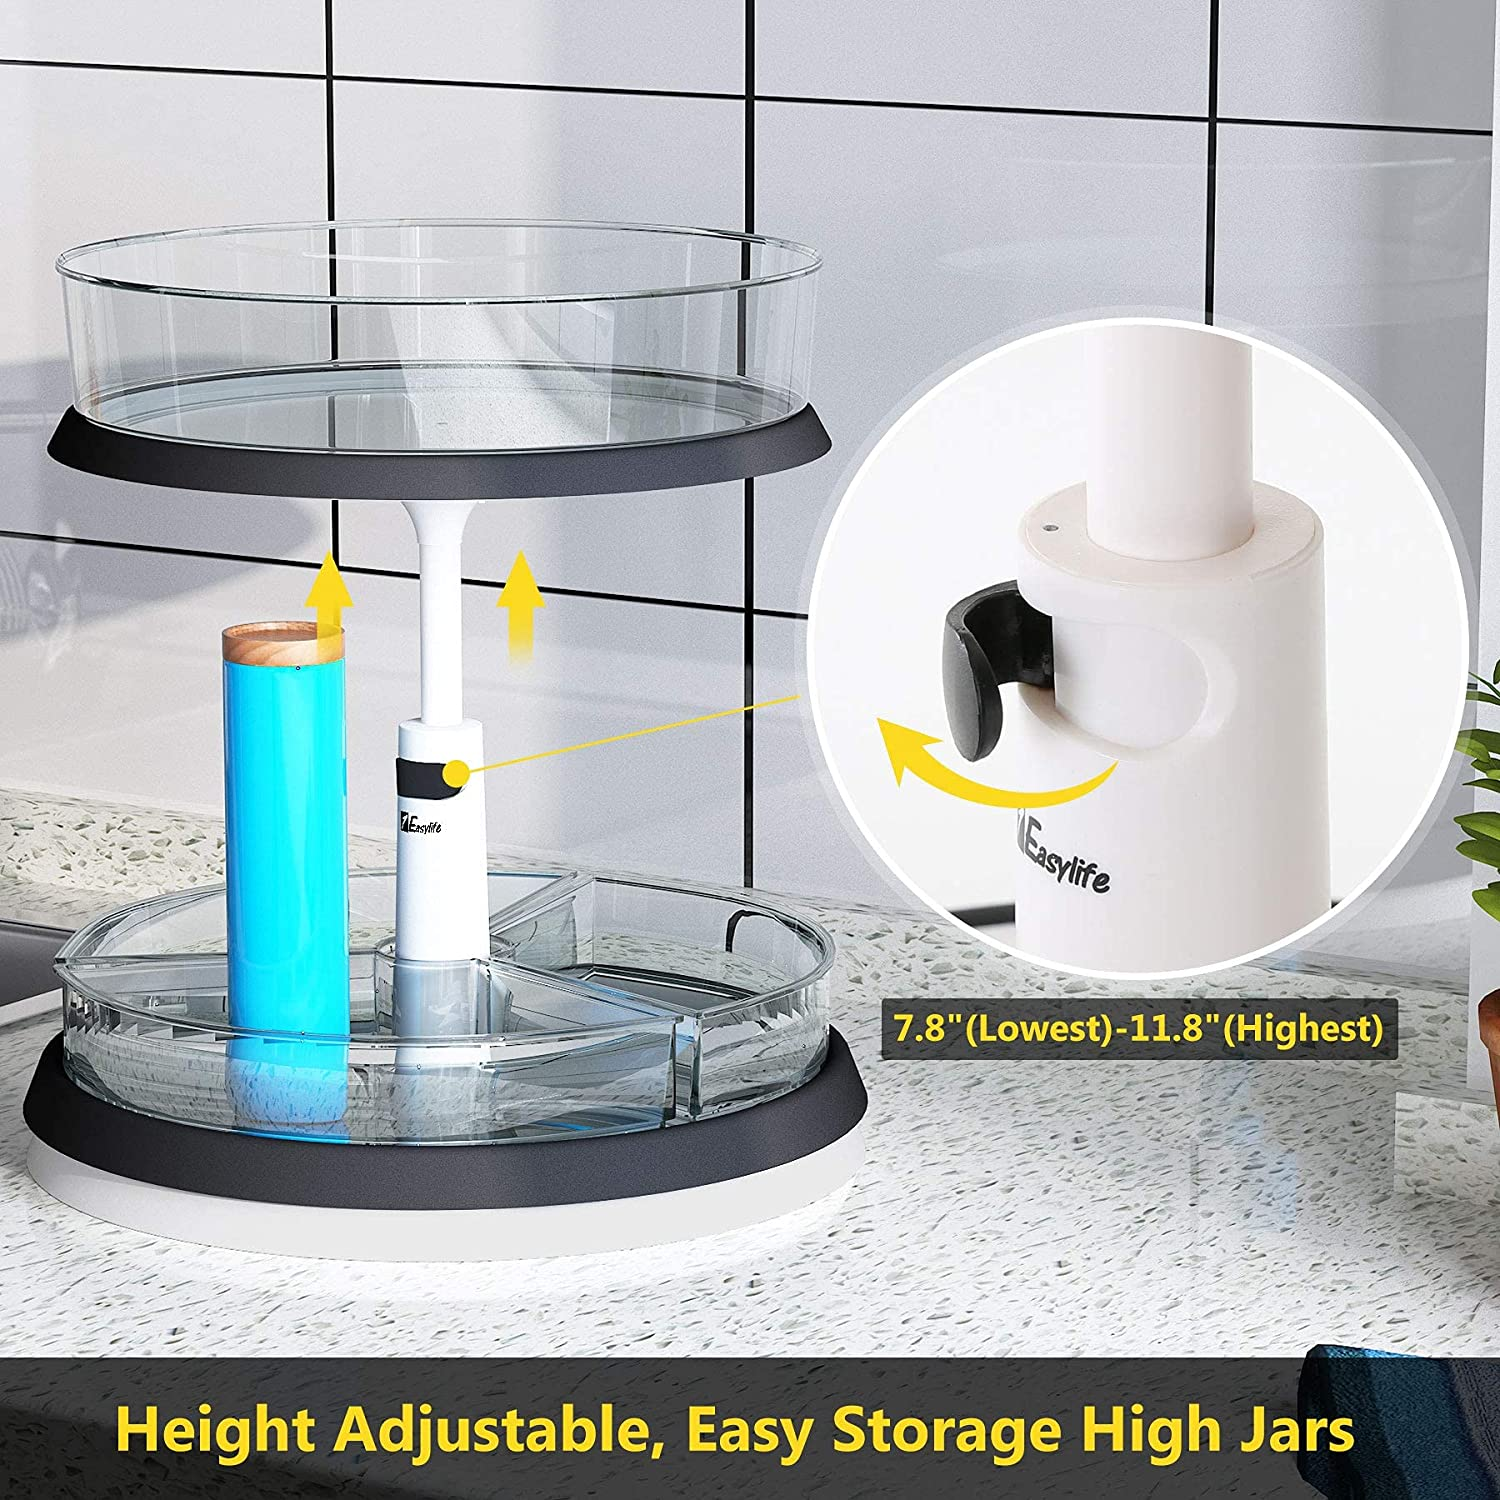 Buy 2 Tier Lazy Susan Turntable And Height Adjustable Cabinet Organizer With 1x Large Bin And 3 X Divided Bins Removable Clear Spice Rack Organizer For Cabinet Pantry Kitchen 2 Tier W Bins Online